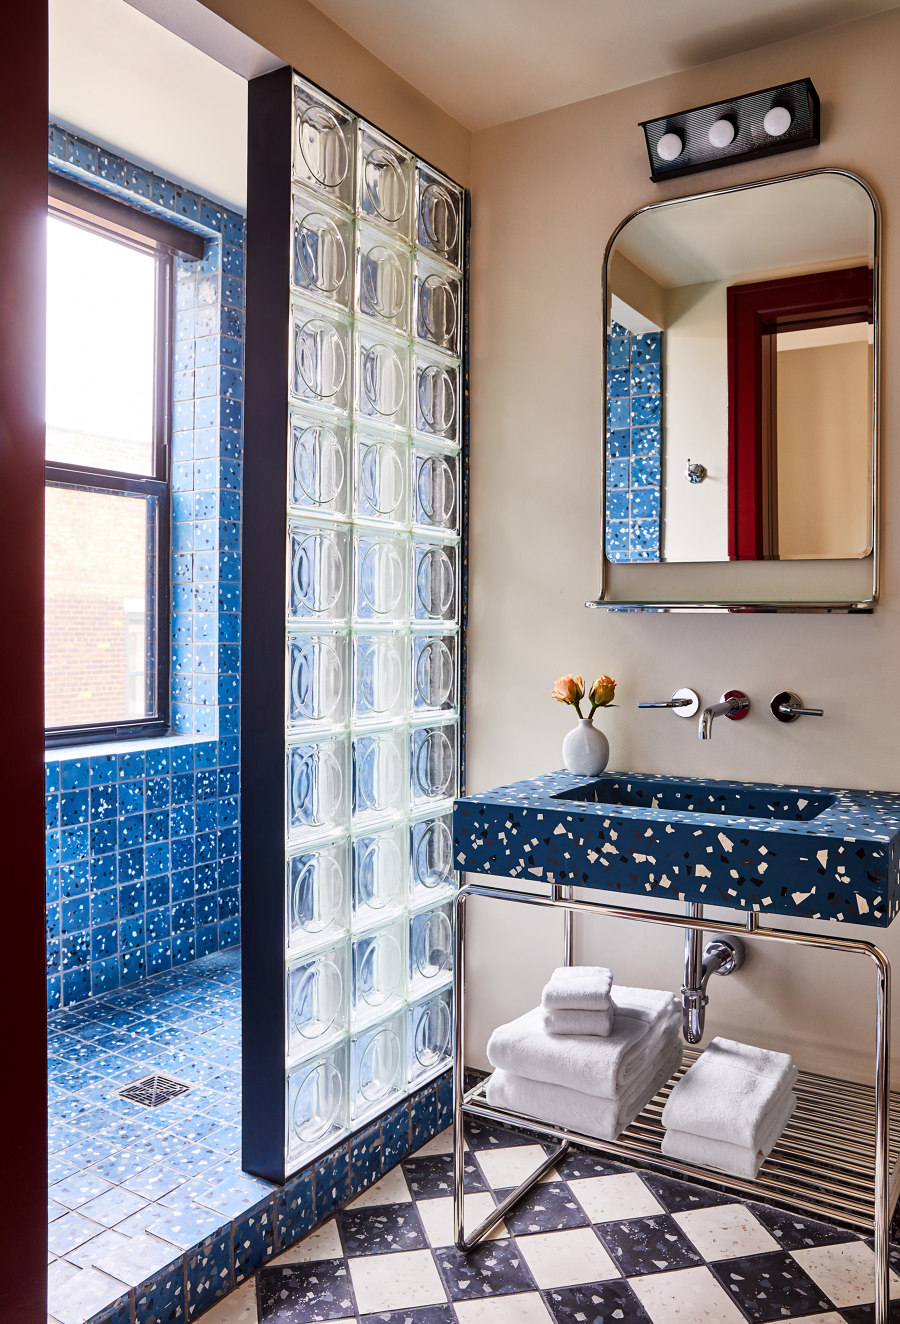 Water worlds: the new hotel-bathroom experience | News